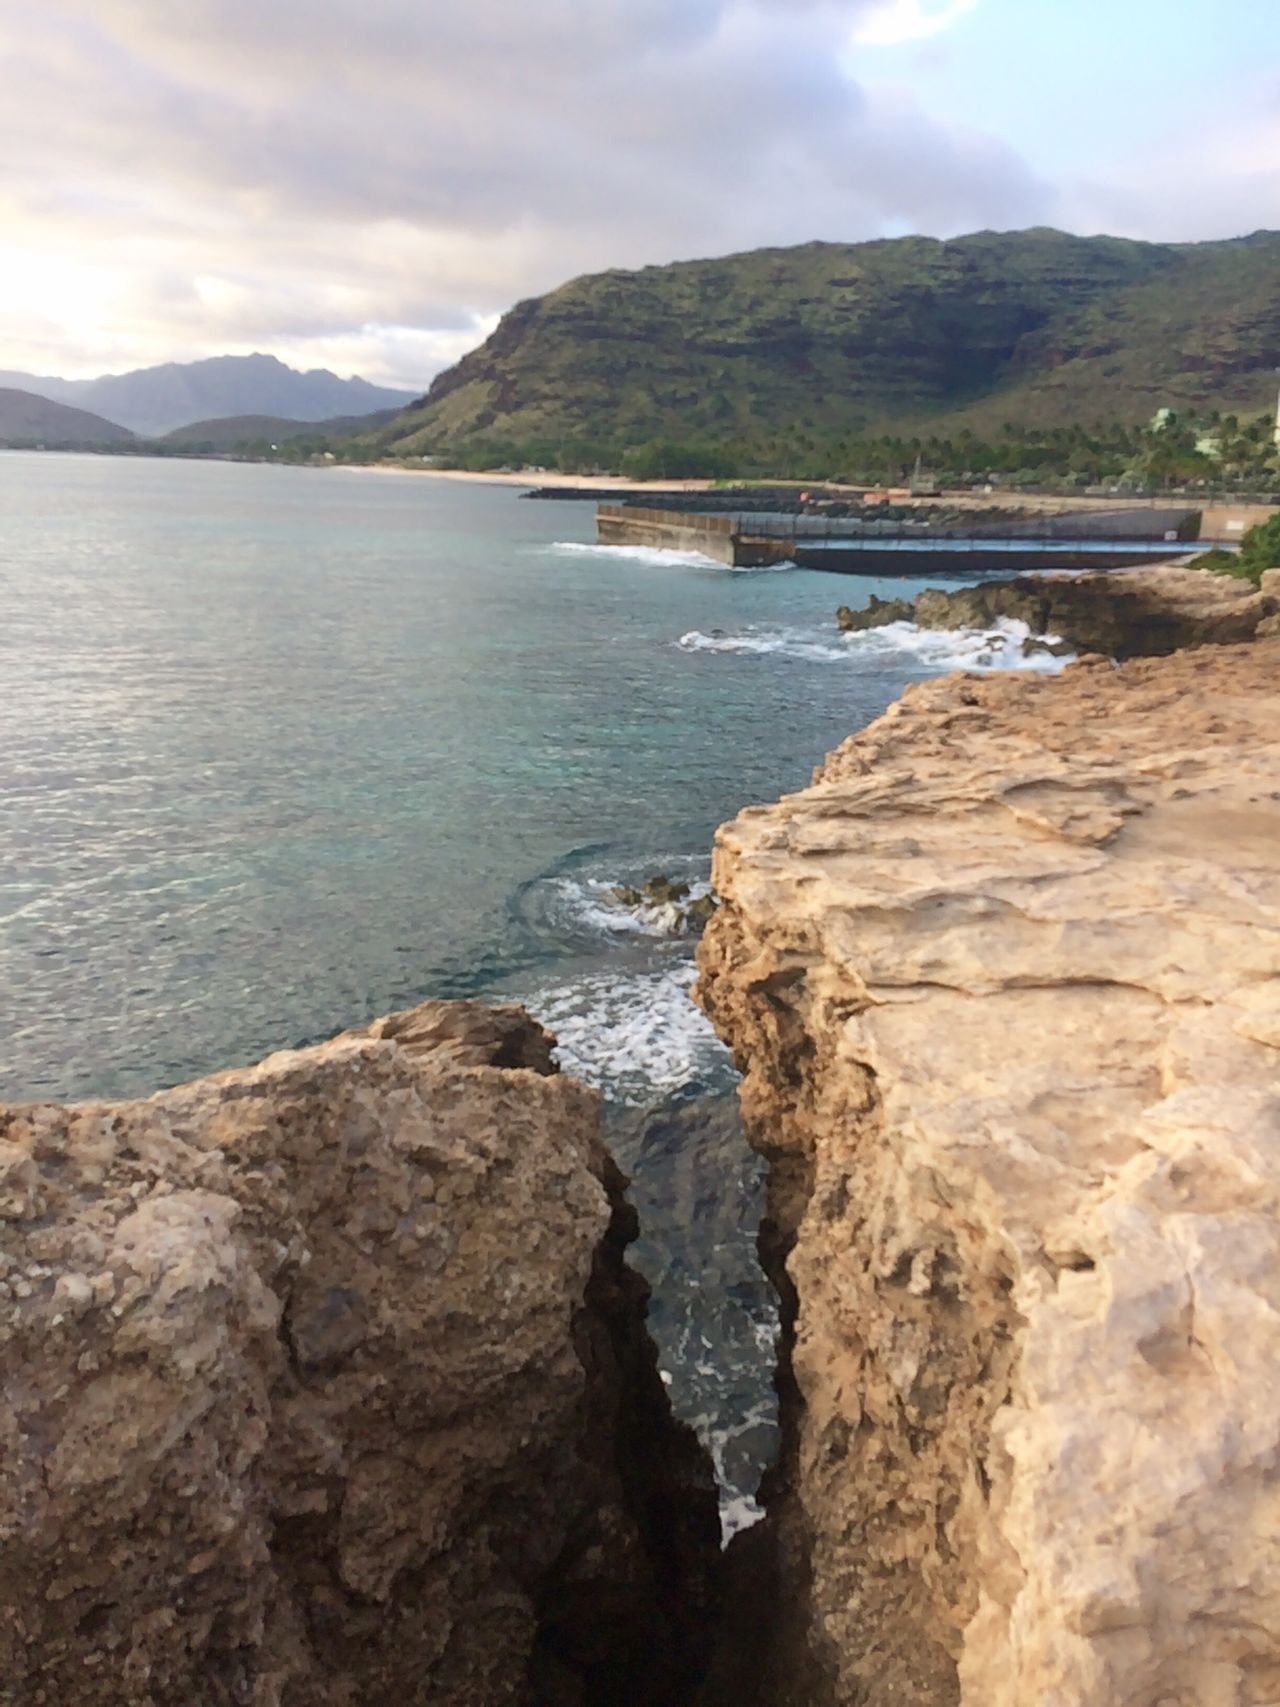 Nofilter Cliff Rock Coast Coastline Island Oahu Hawaii Westside Mountain Water Nature Beauty In Nature Sky Day Outdoors Scenics Sea No People Landscape Scenery Beachtime Staycation Waitingforsunset Sunset